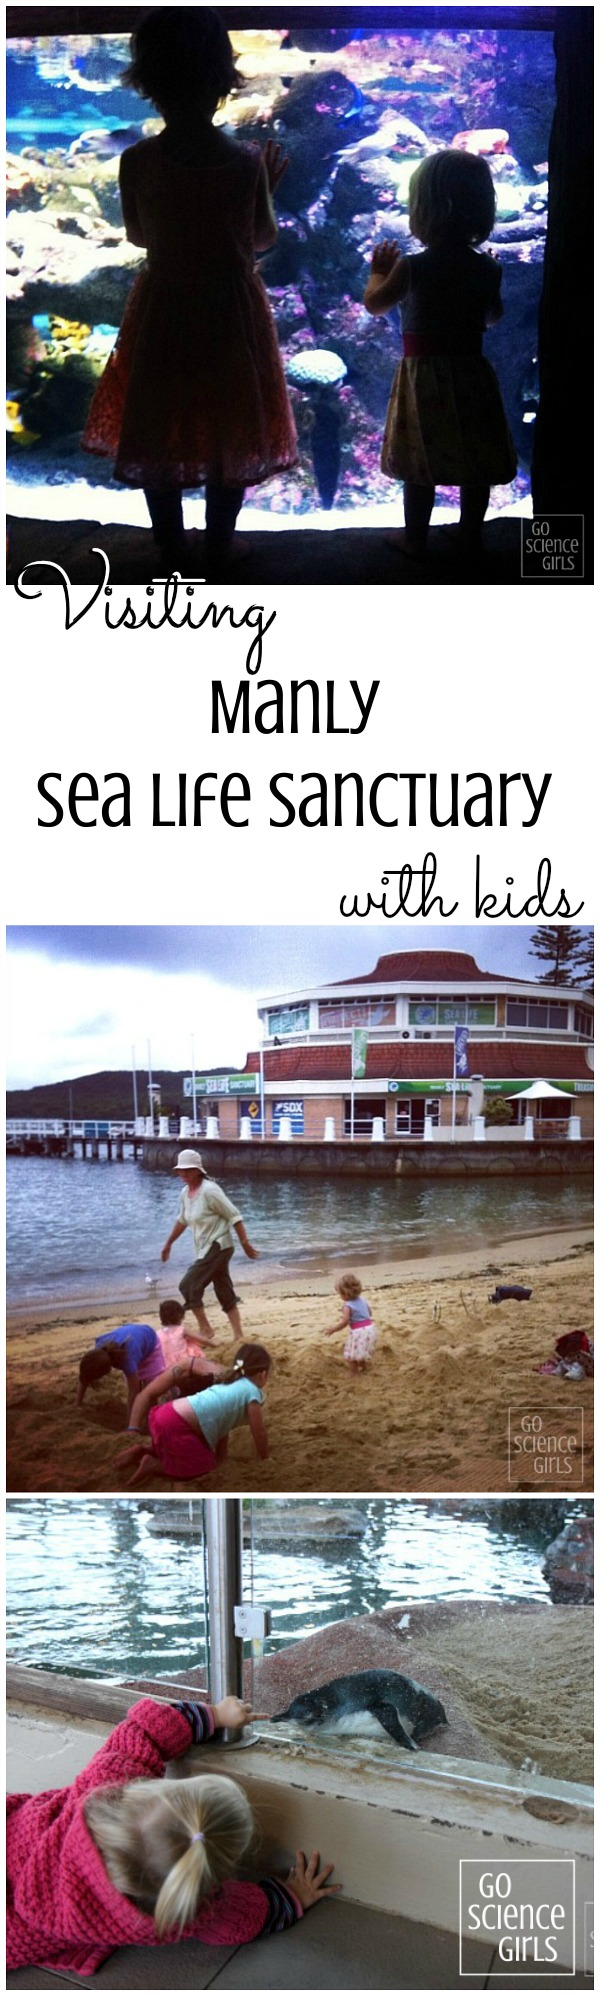 Visiting Manly Sea Life Sanctuary with kids - a review by Go Science Girls